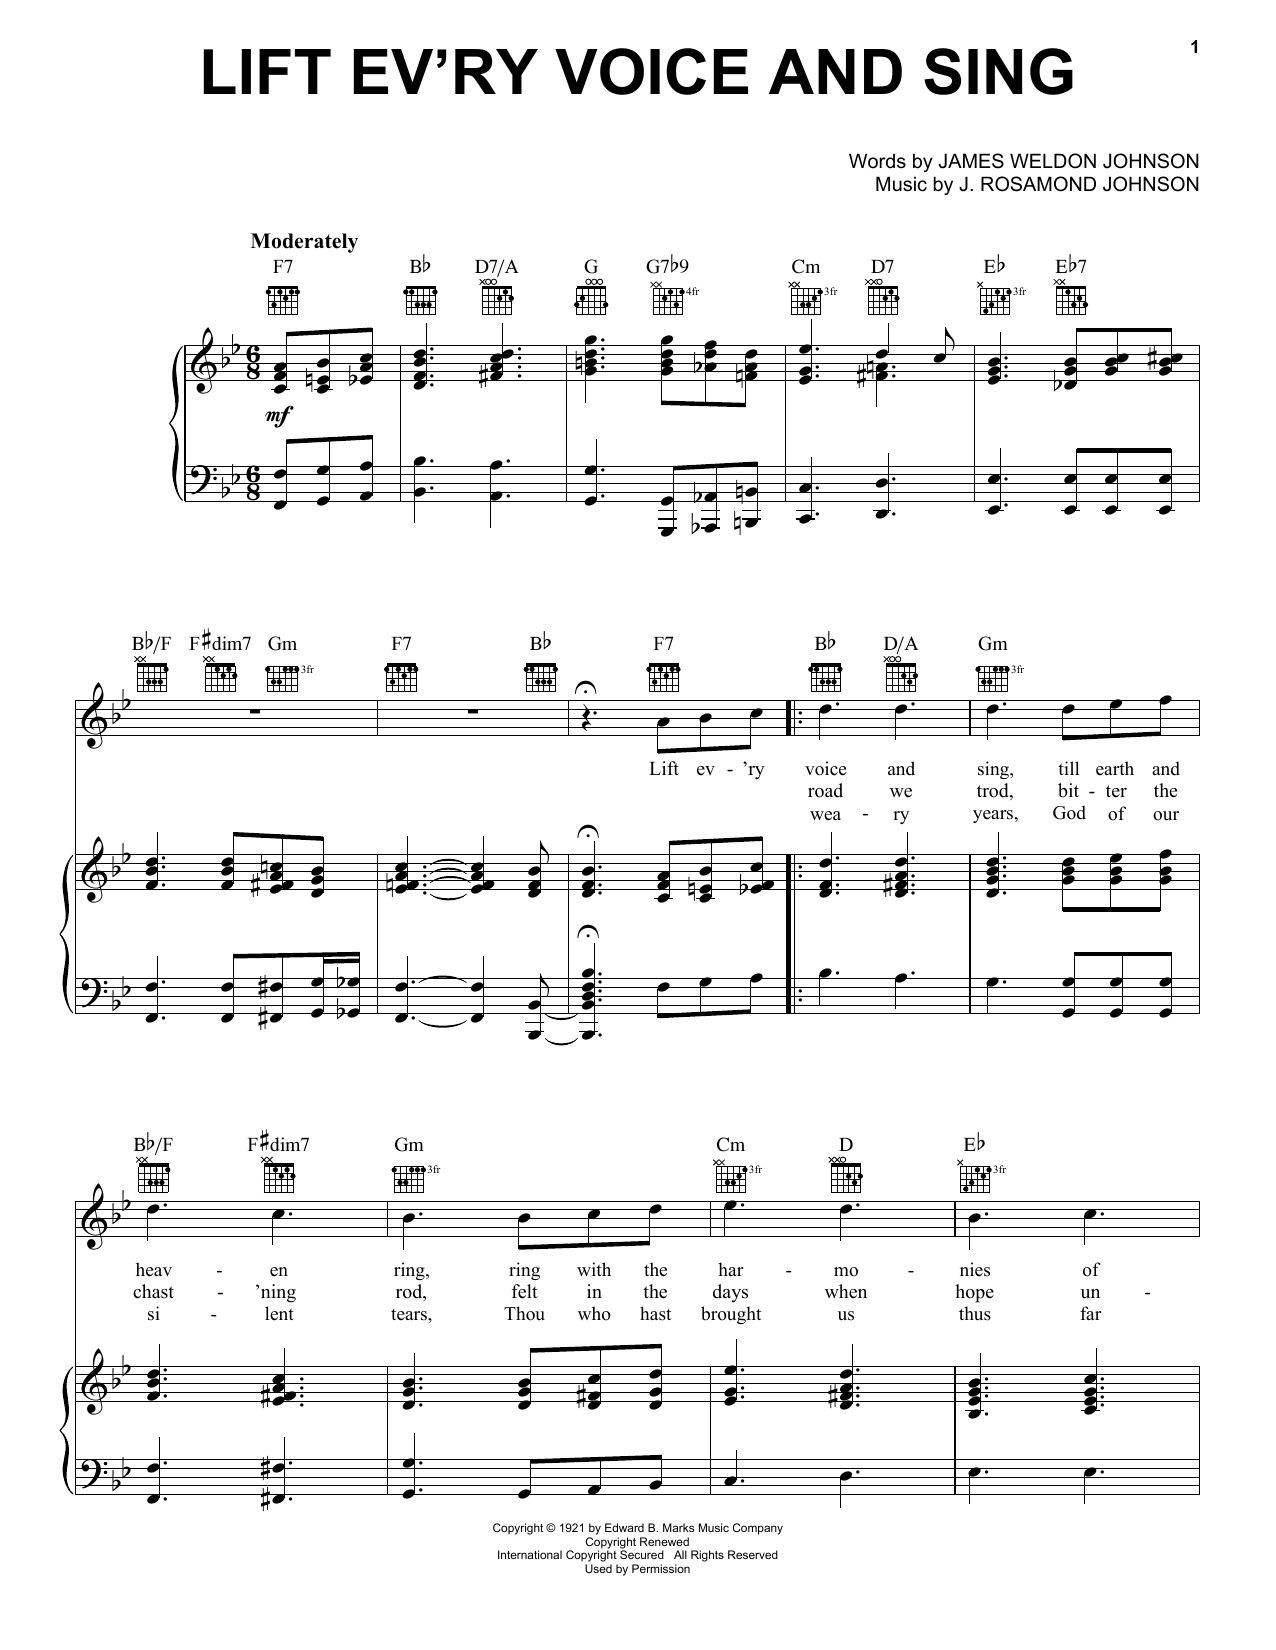 J. Rosamond Johnson Lift Ev'ry Voice And Sing sheet music notes and chords. Download Printable PDF.